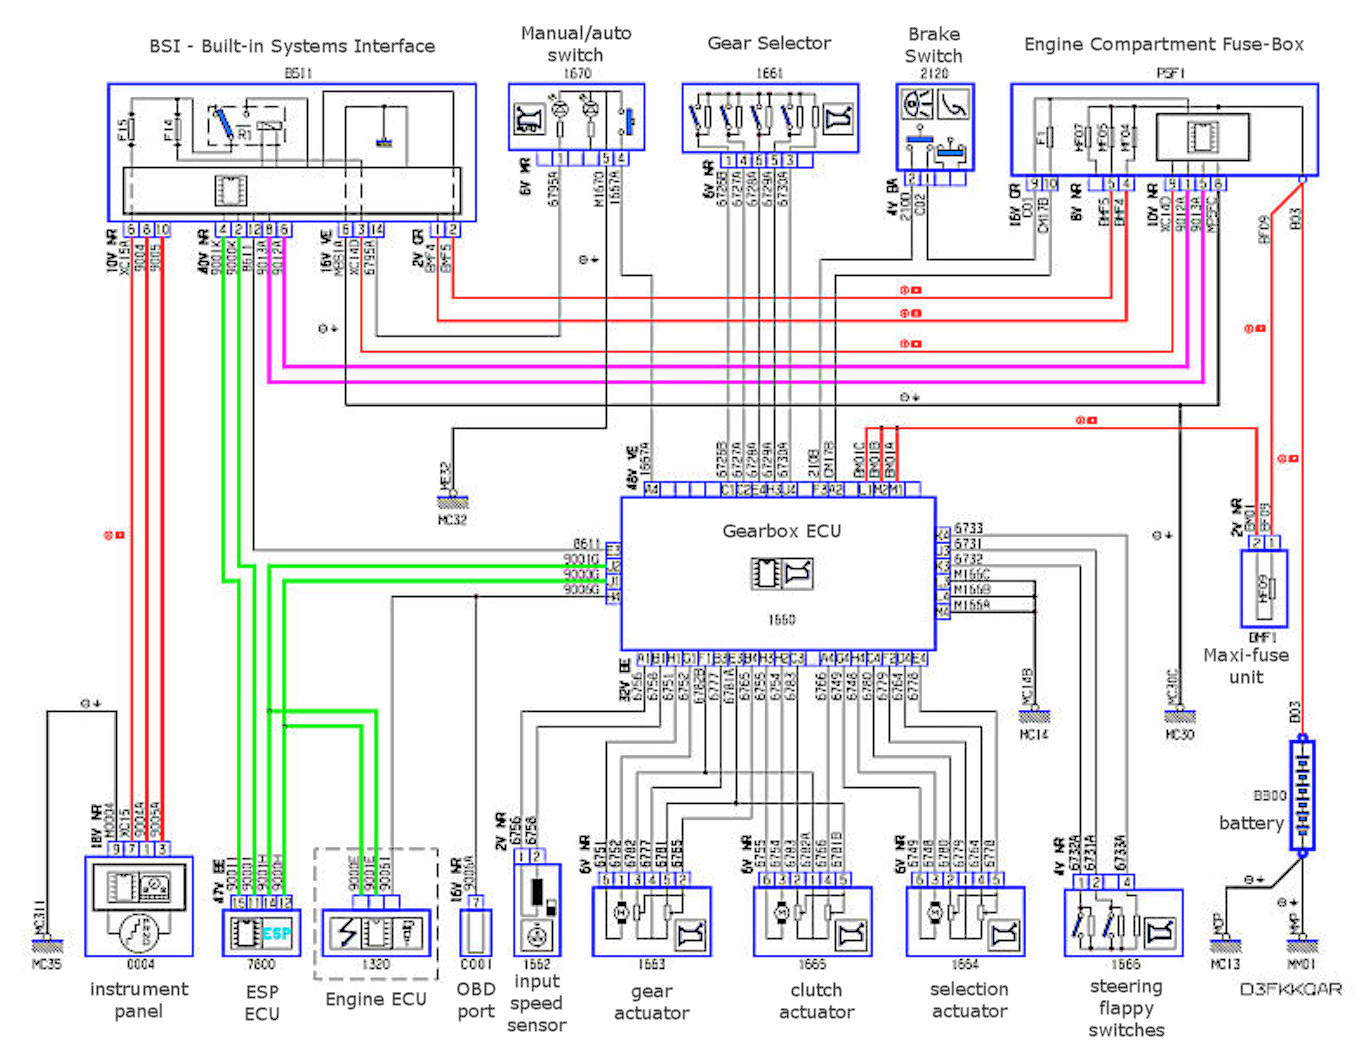 5gearboxecu peugeot 206 wiring diagram peugeot 508 \u2022 free wiring diagrams peugeot 207 engine fuse box diagram at fashall.co